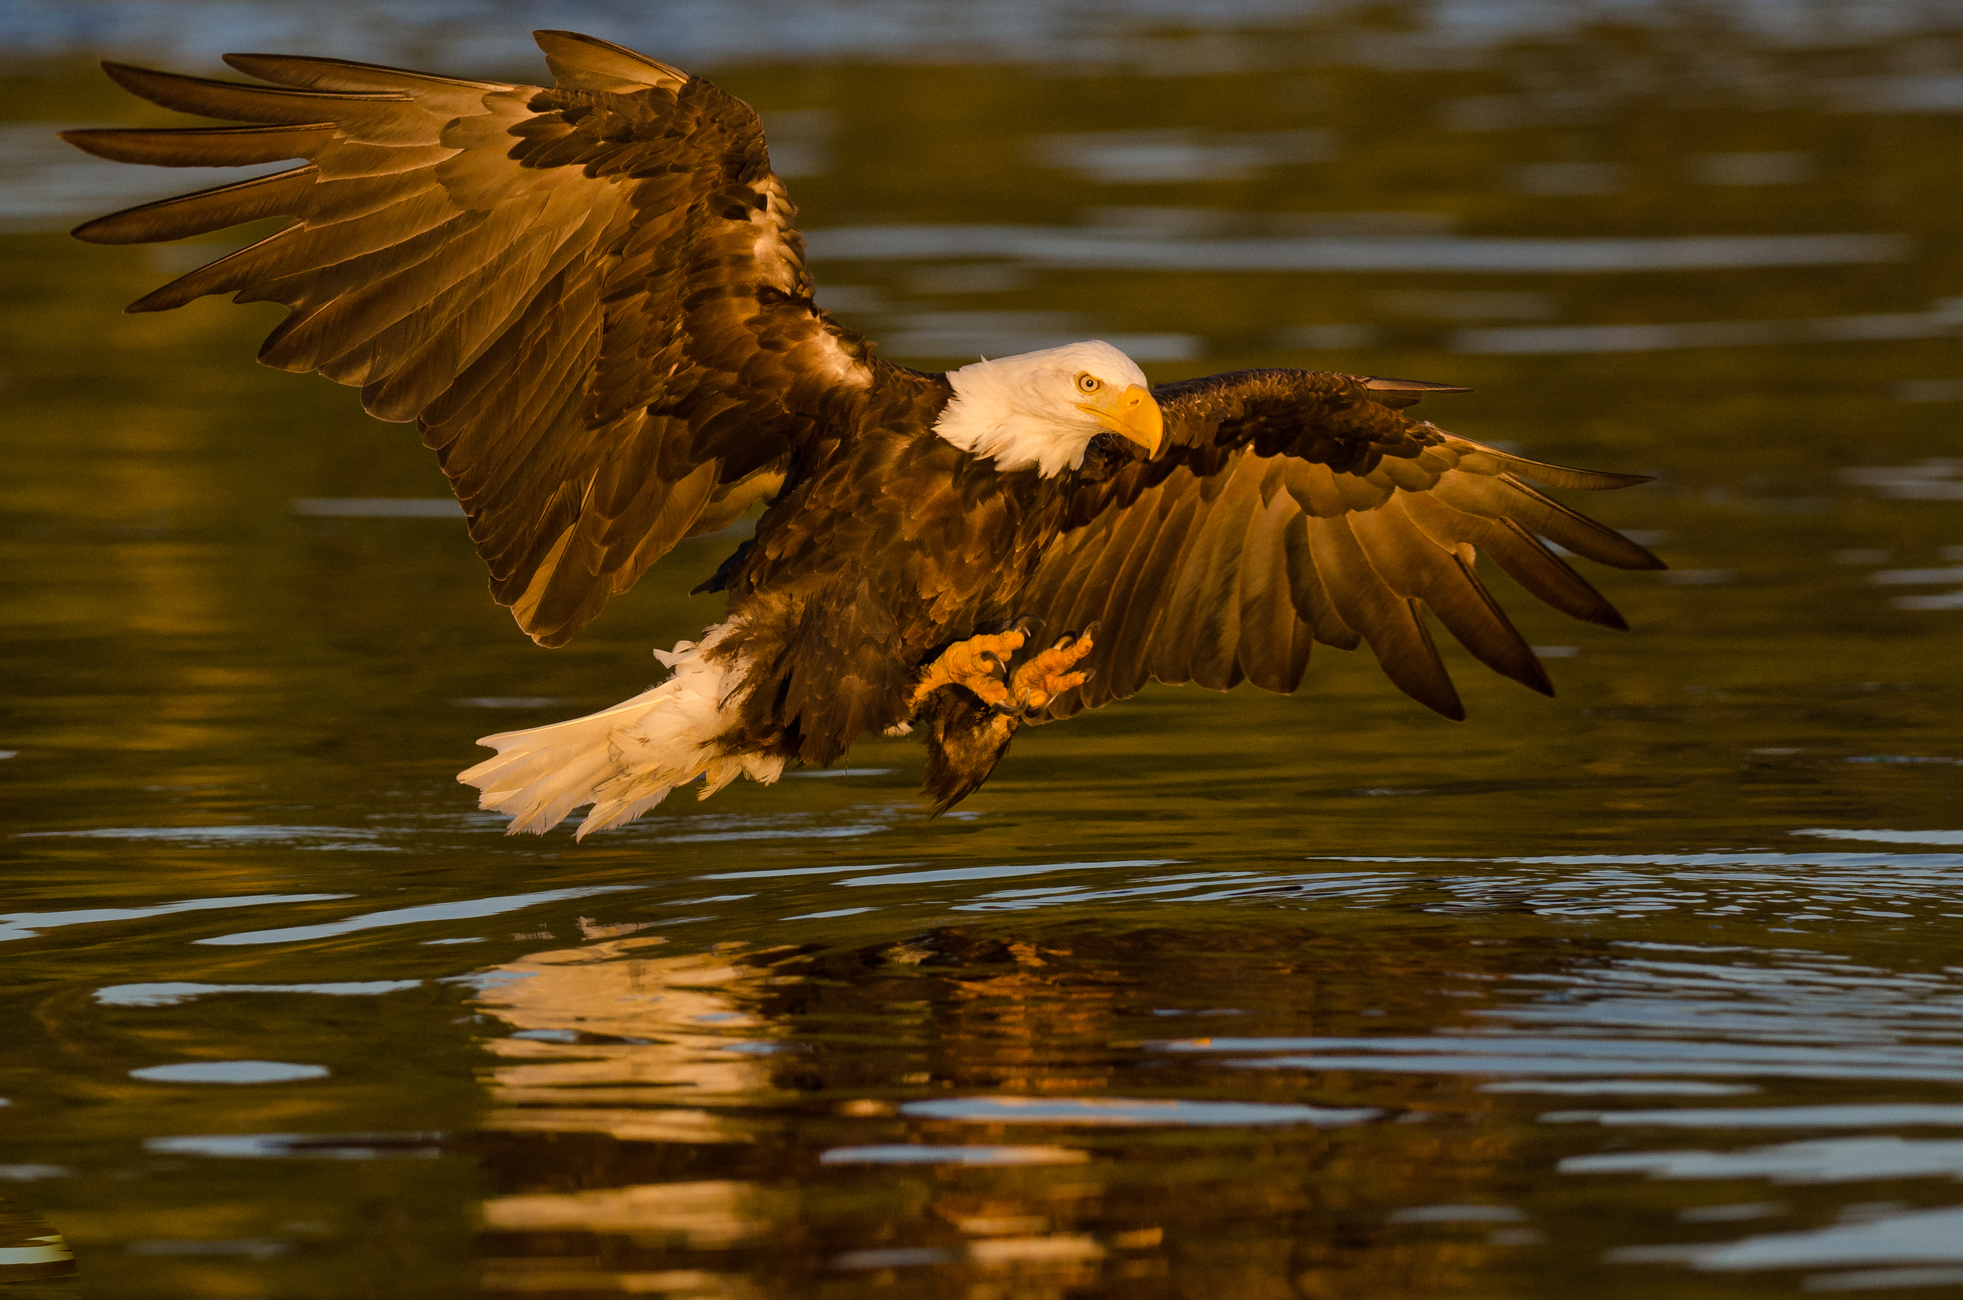 A bald eagle fishing at sunset